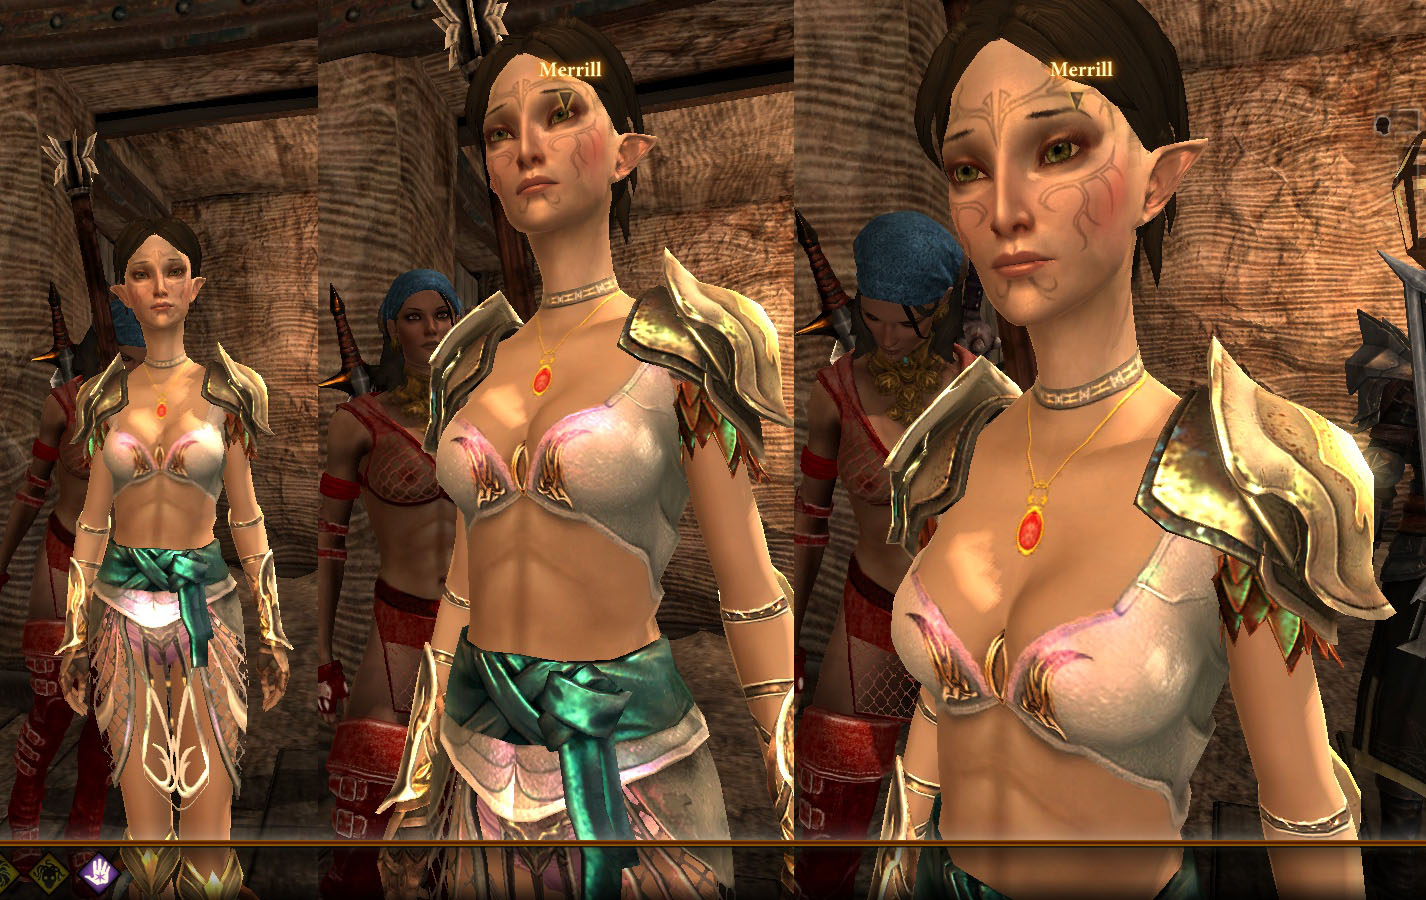 Dragonage2 nude mod porncraft photo